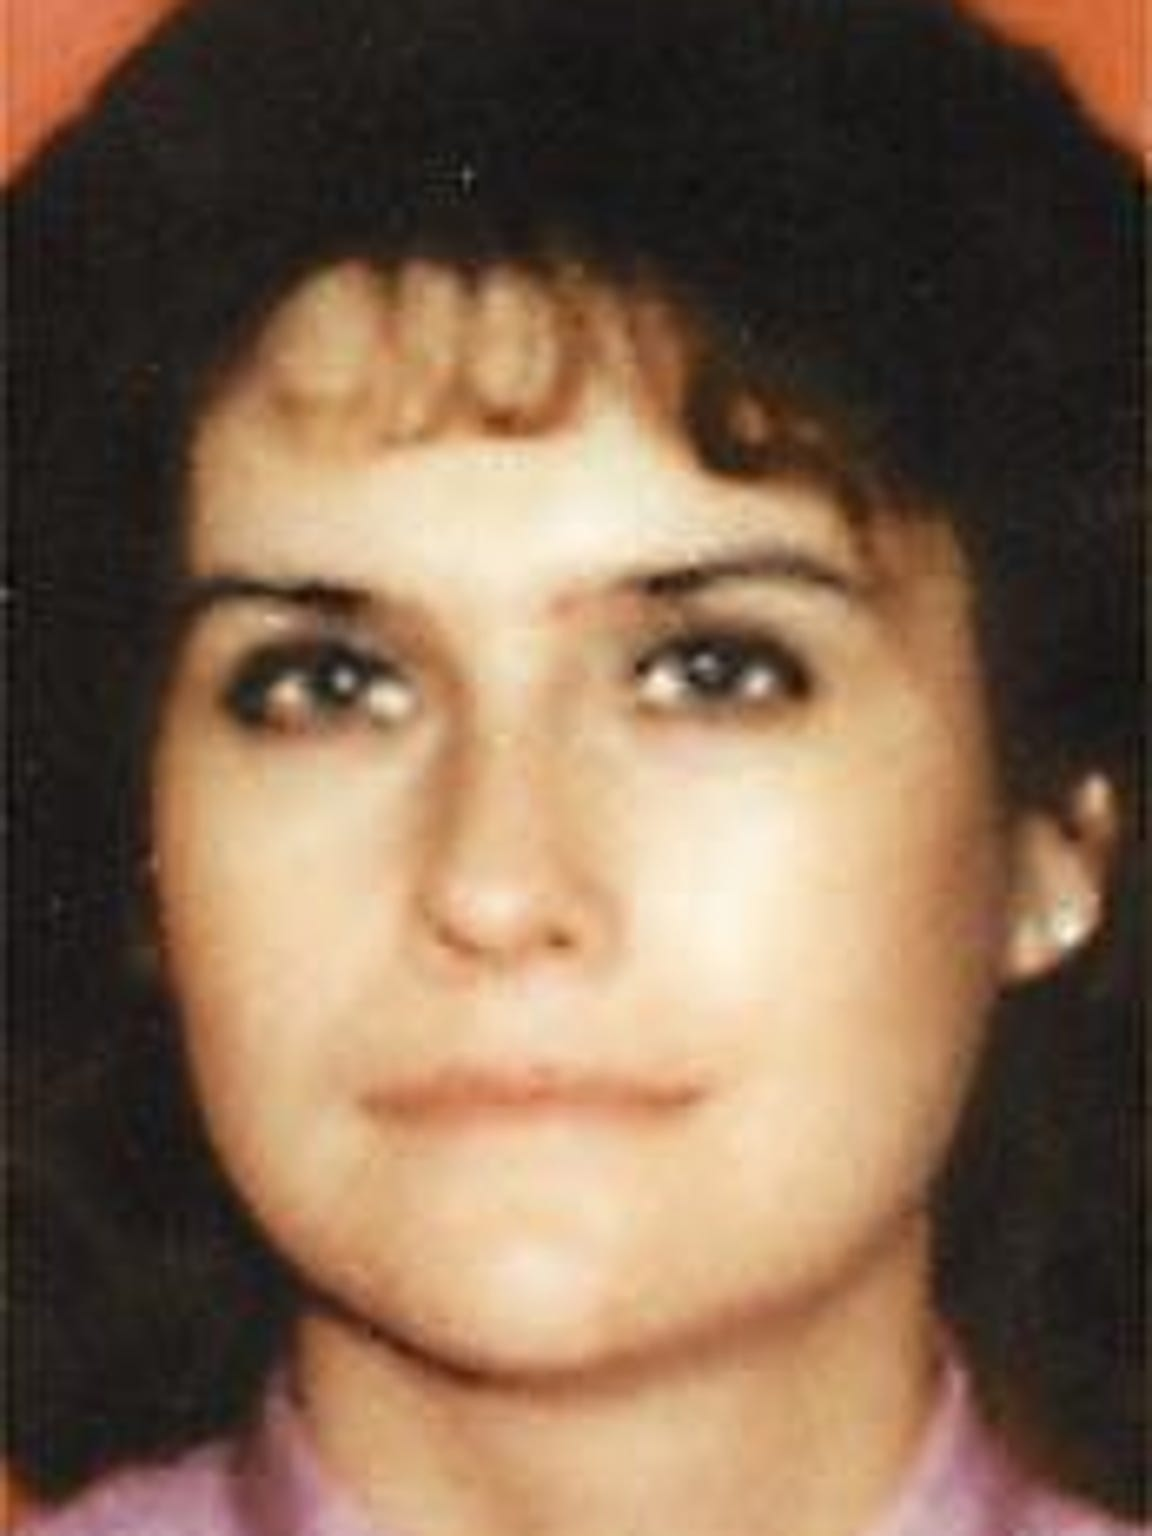 Jeanette Kirby was murdered by David Draheim in 1990.